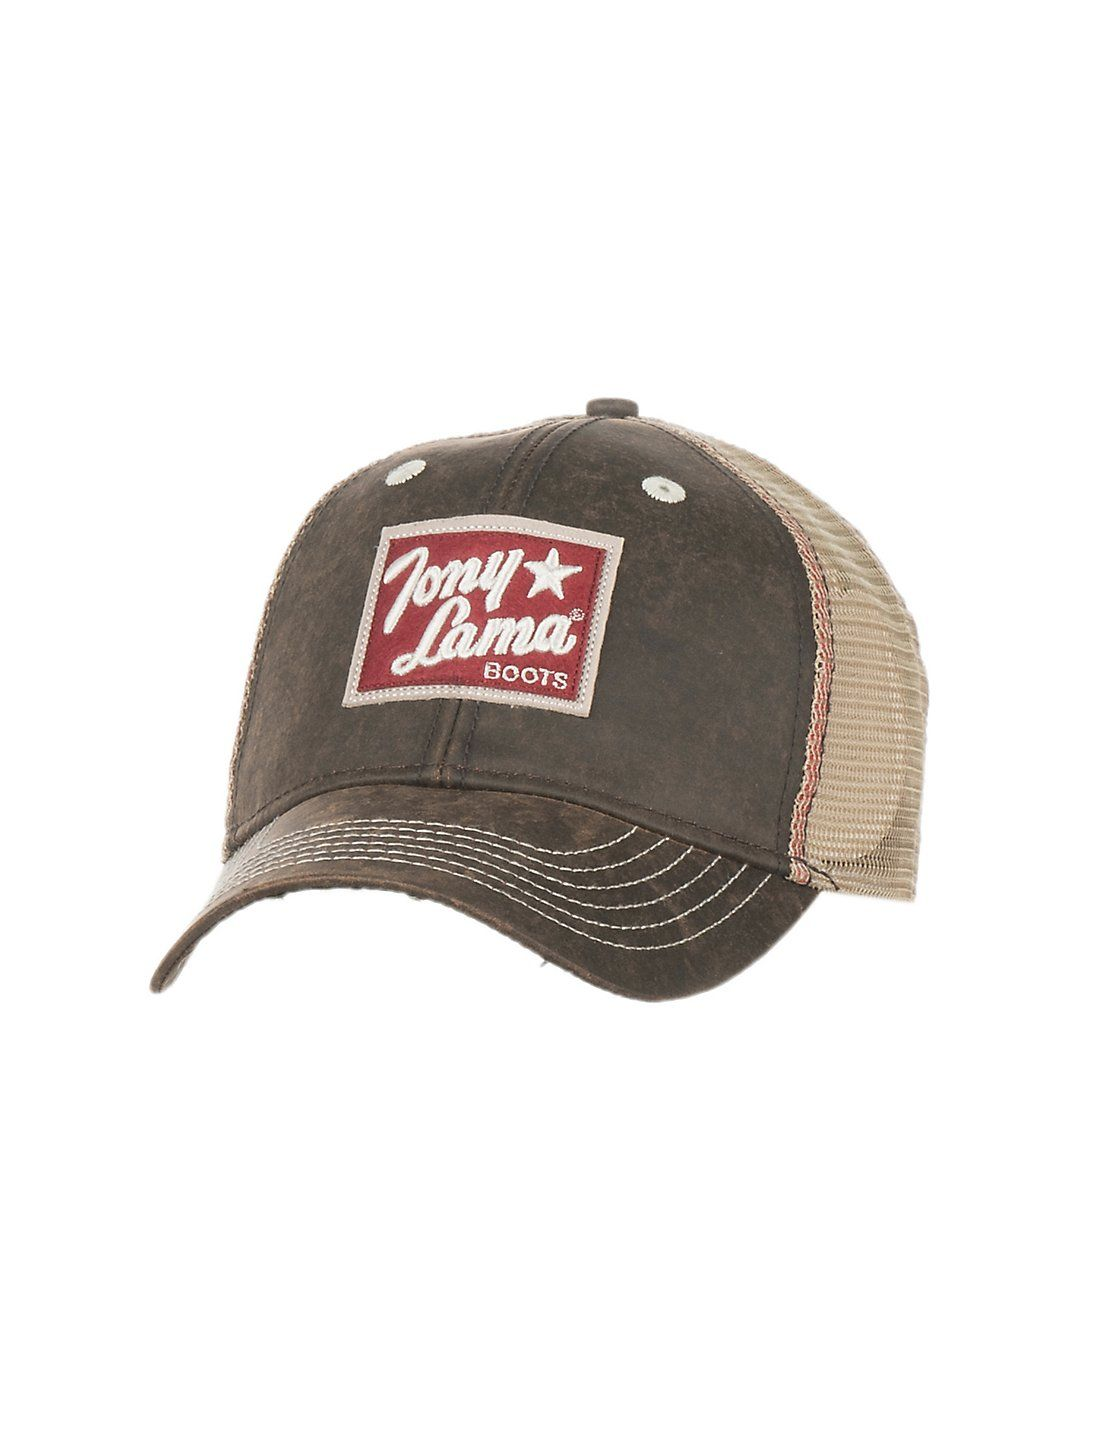 Tony Lama Oilskin Brown with Patch Logo and Cream Mesh Back Snap Back Cap  04a79253e4ac